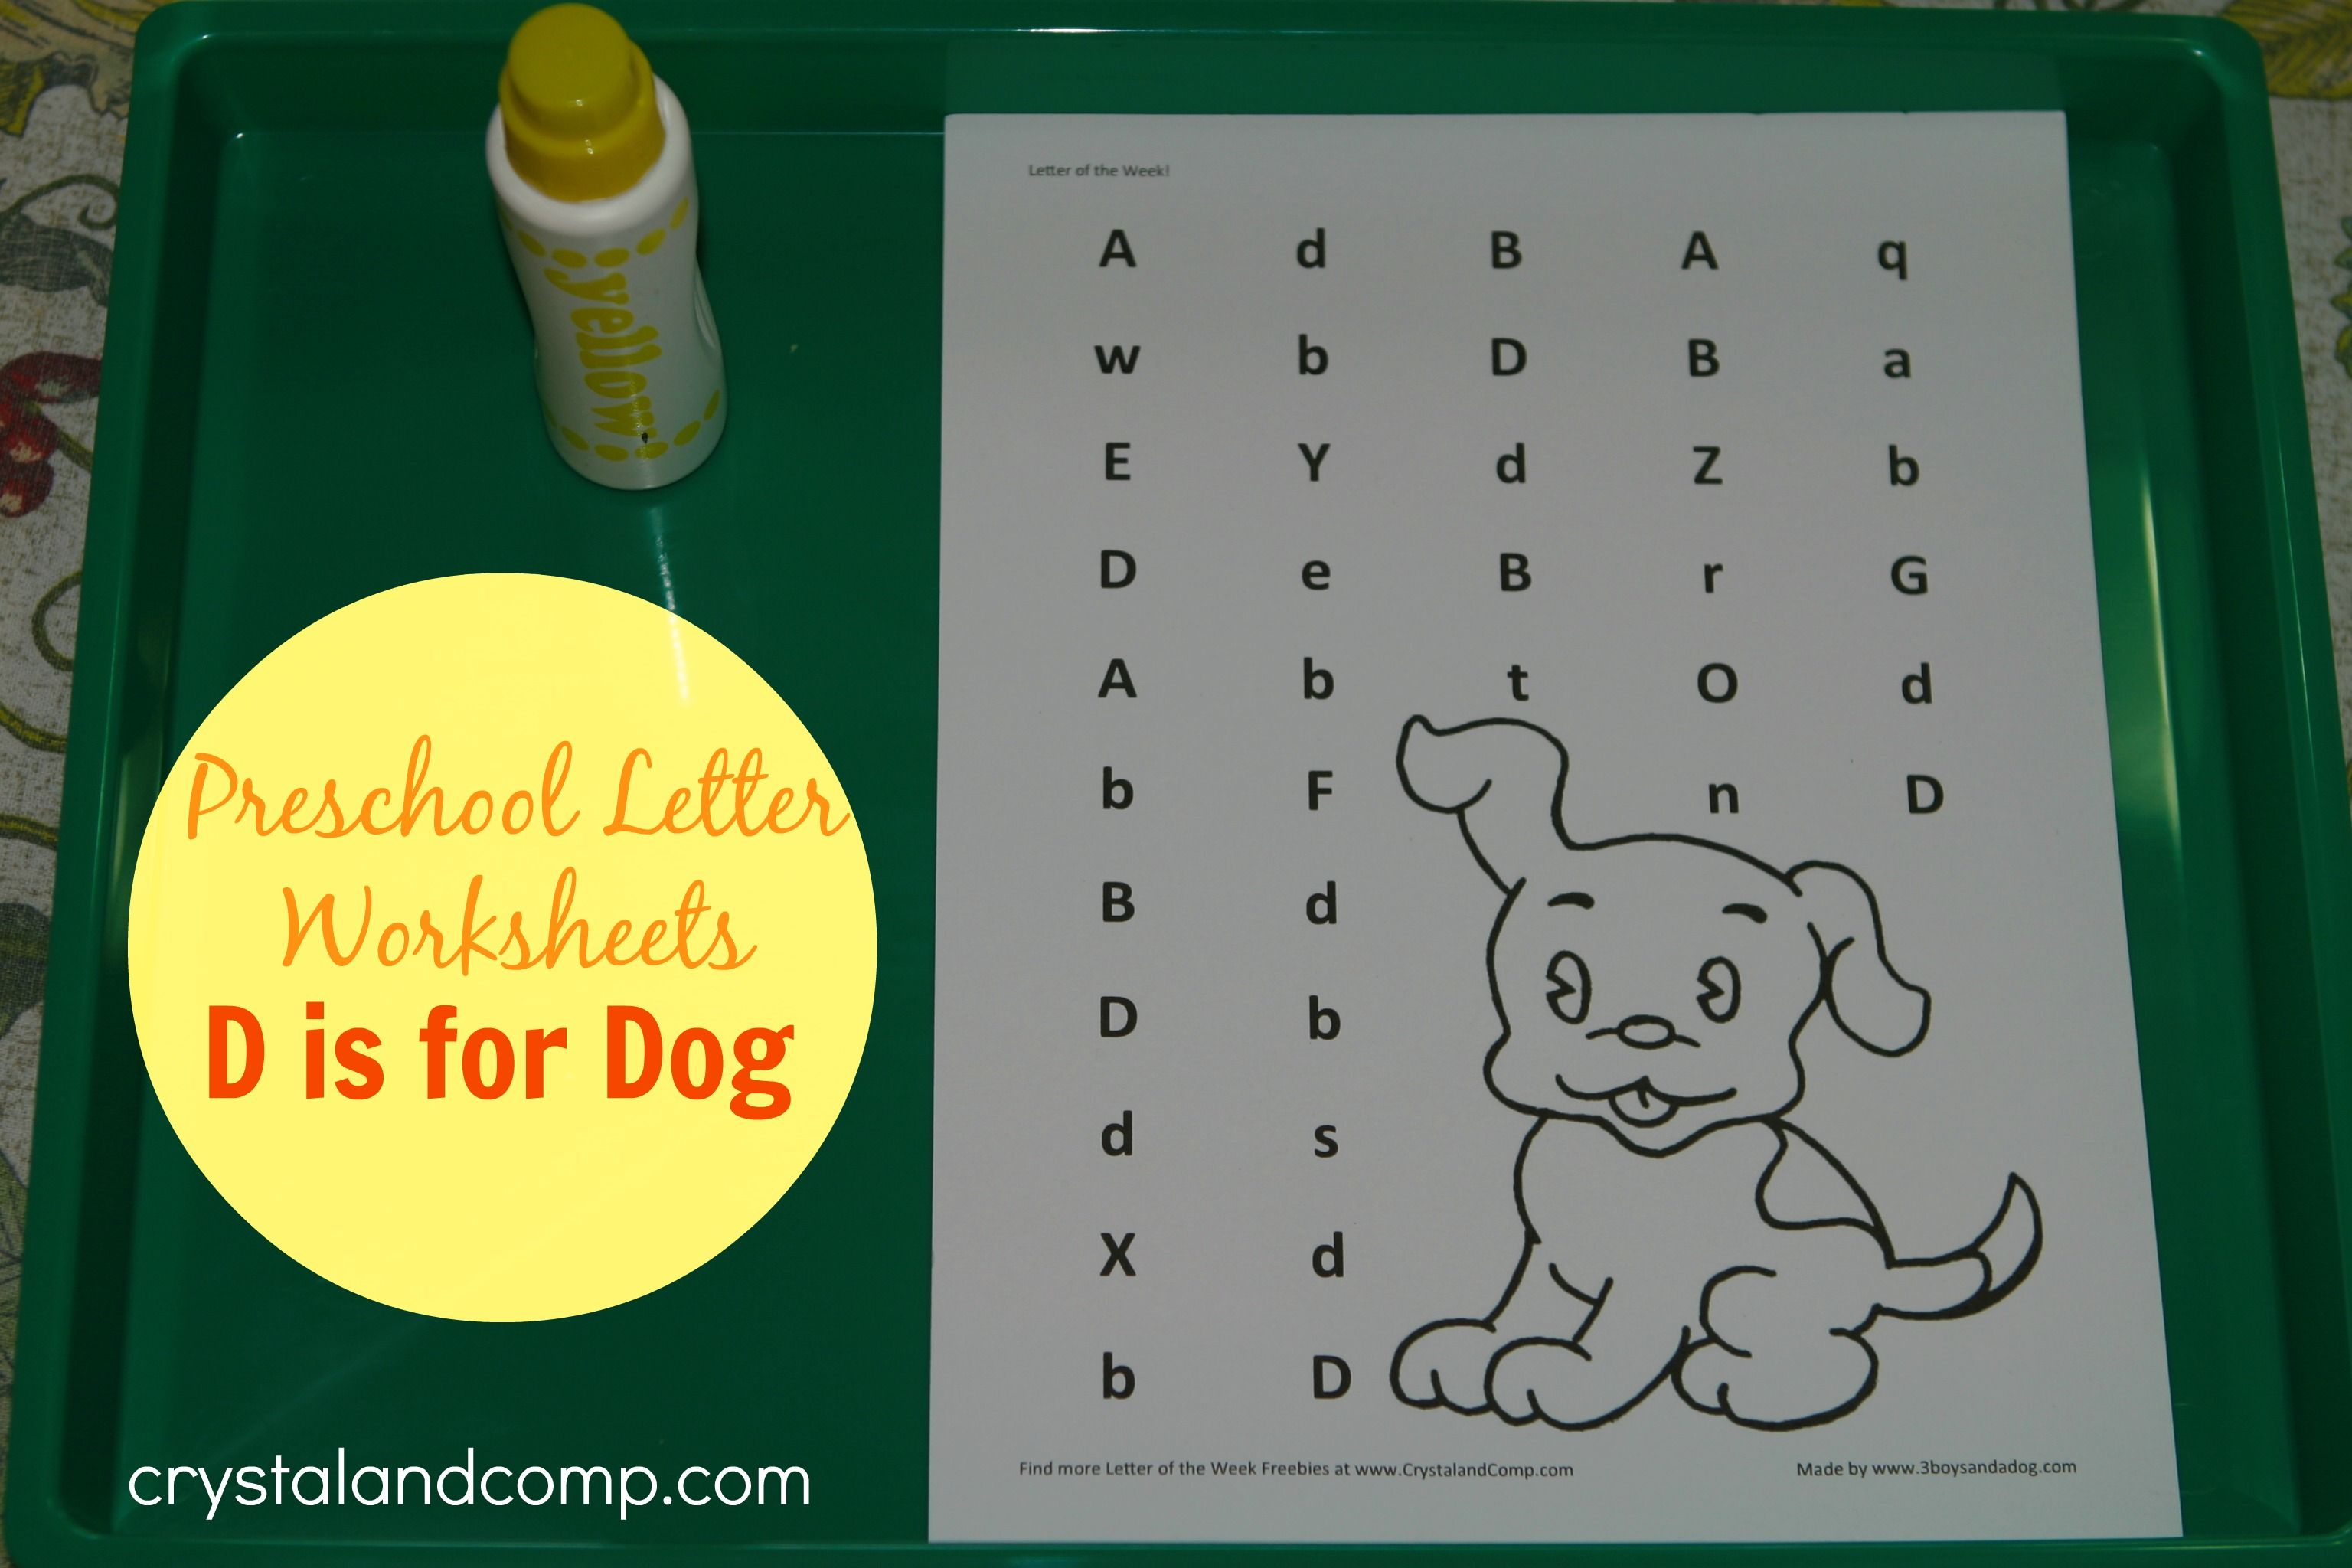 Preschool Letter Worksheets: D is for Dog | Letter worksheets ...